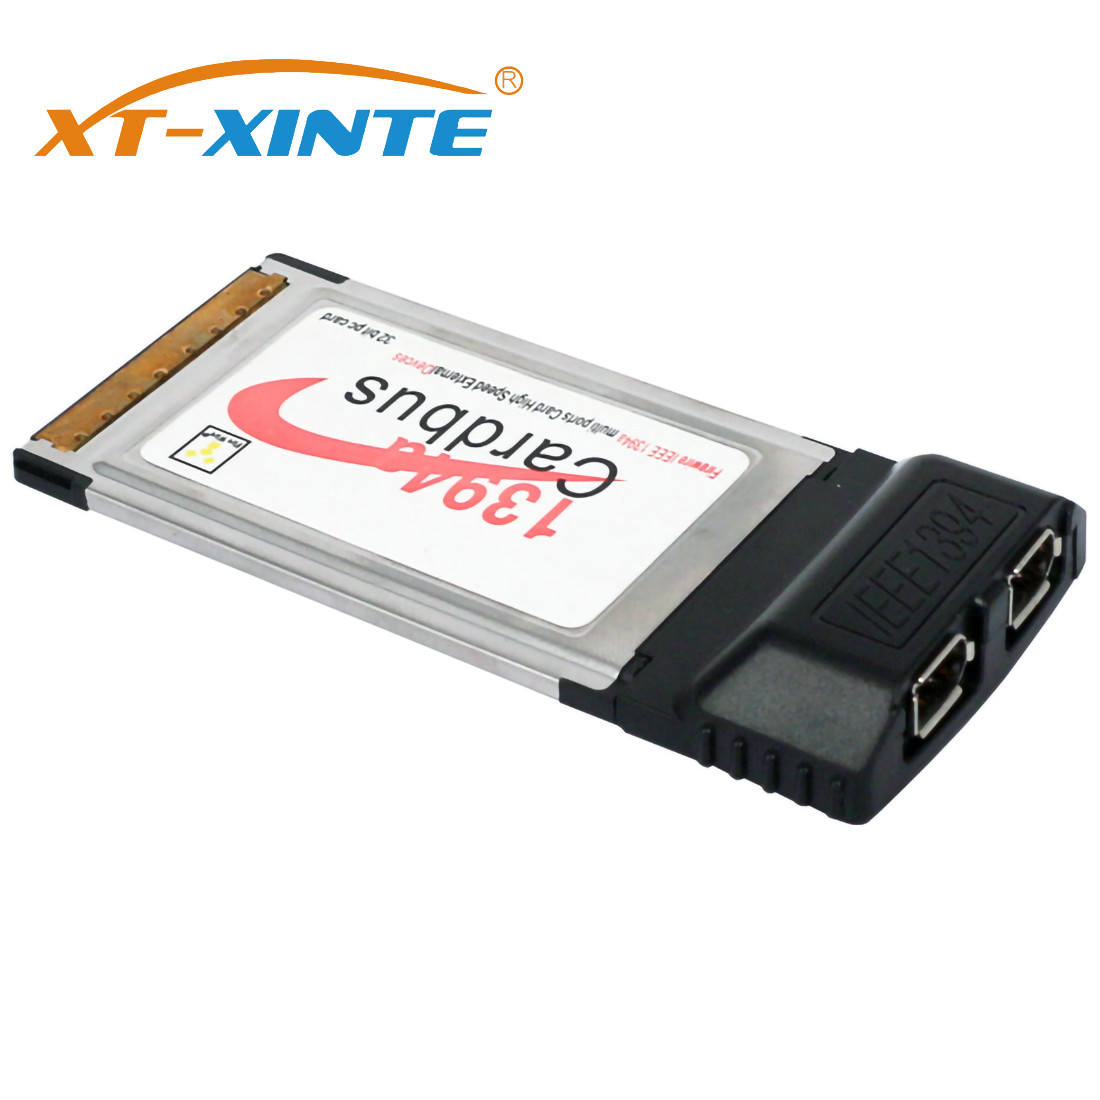 XT-XINTE 2 Port 6 Pin 1394A IEEE 1394 CardBus Card 54mm For PCMCIA Digital Camera DV Camcorders Hard Disks Removable